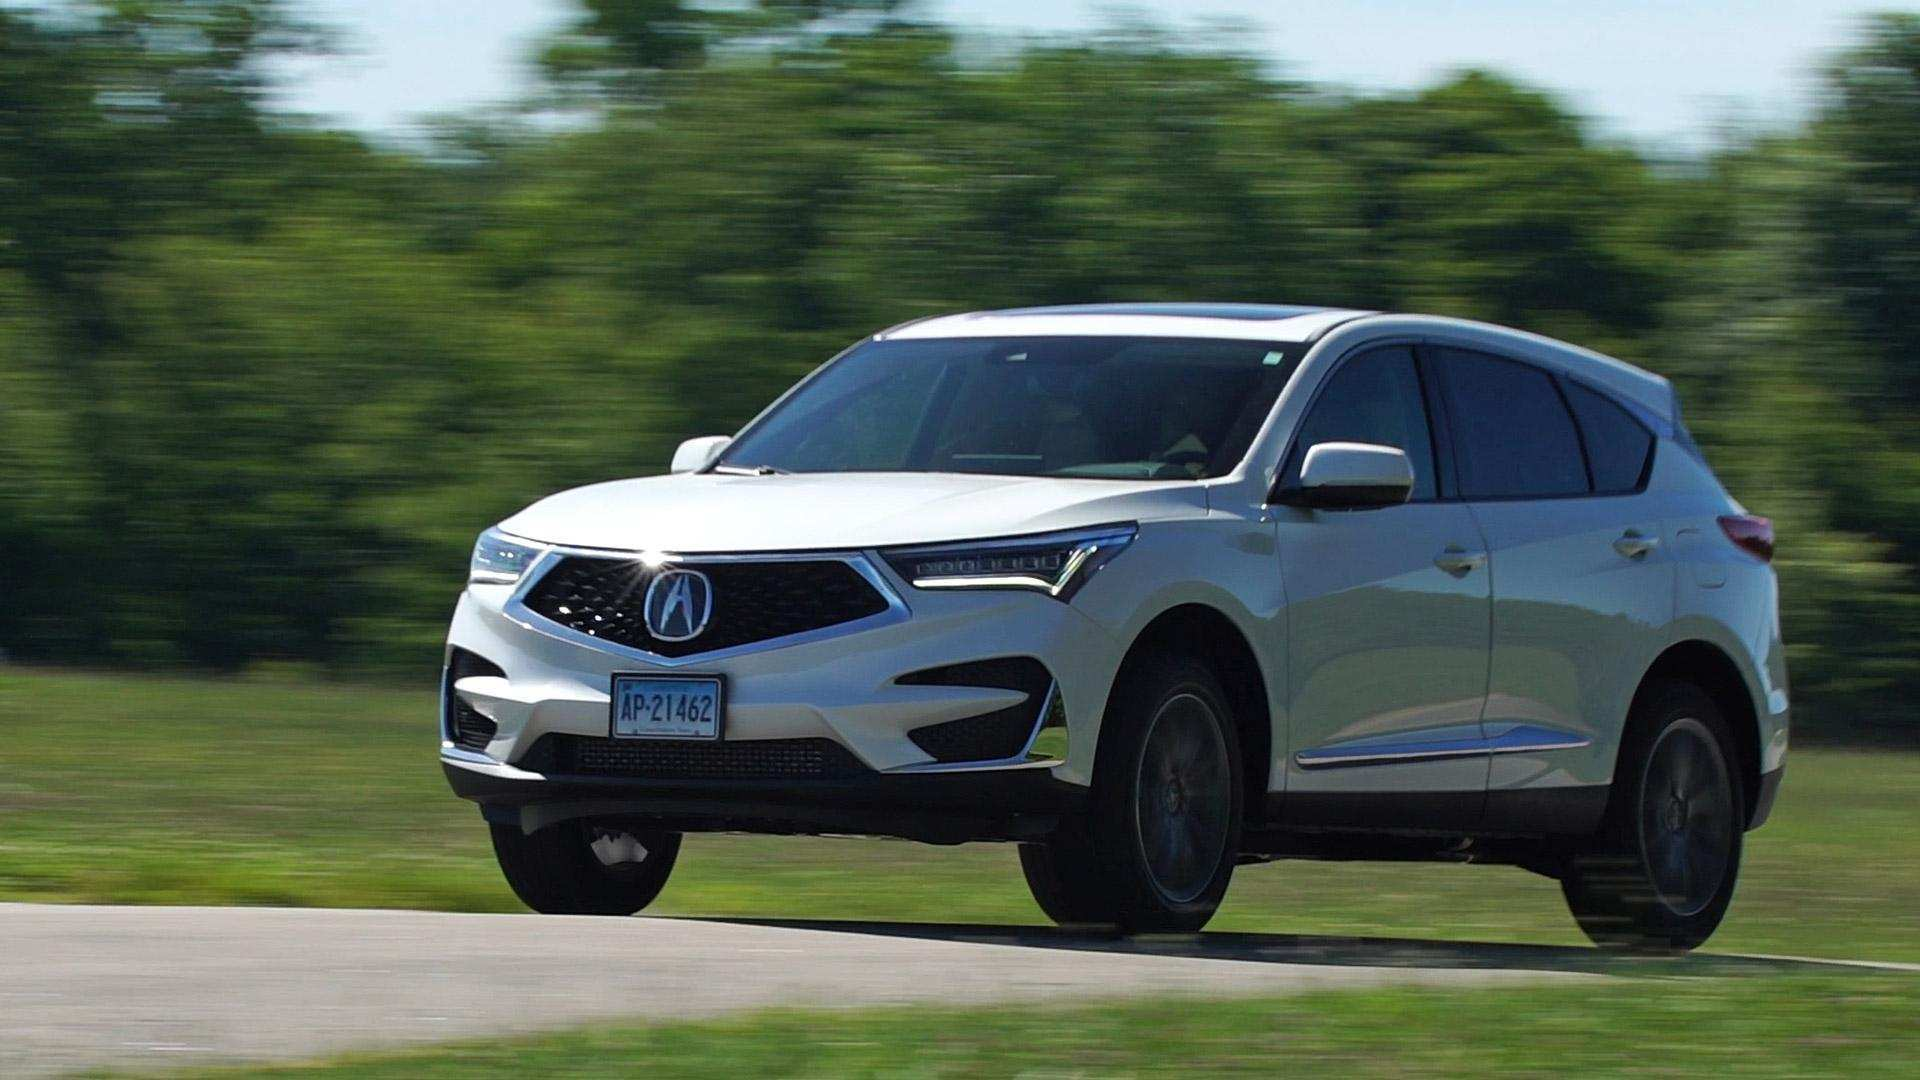 17 All New The Acura Hybrid Suv 2019 New Engine Specs and Review by The Acura Hybrid Suv 2019 New Engine